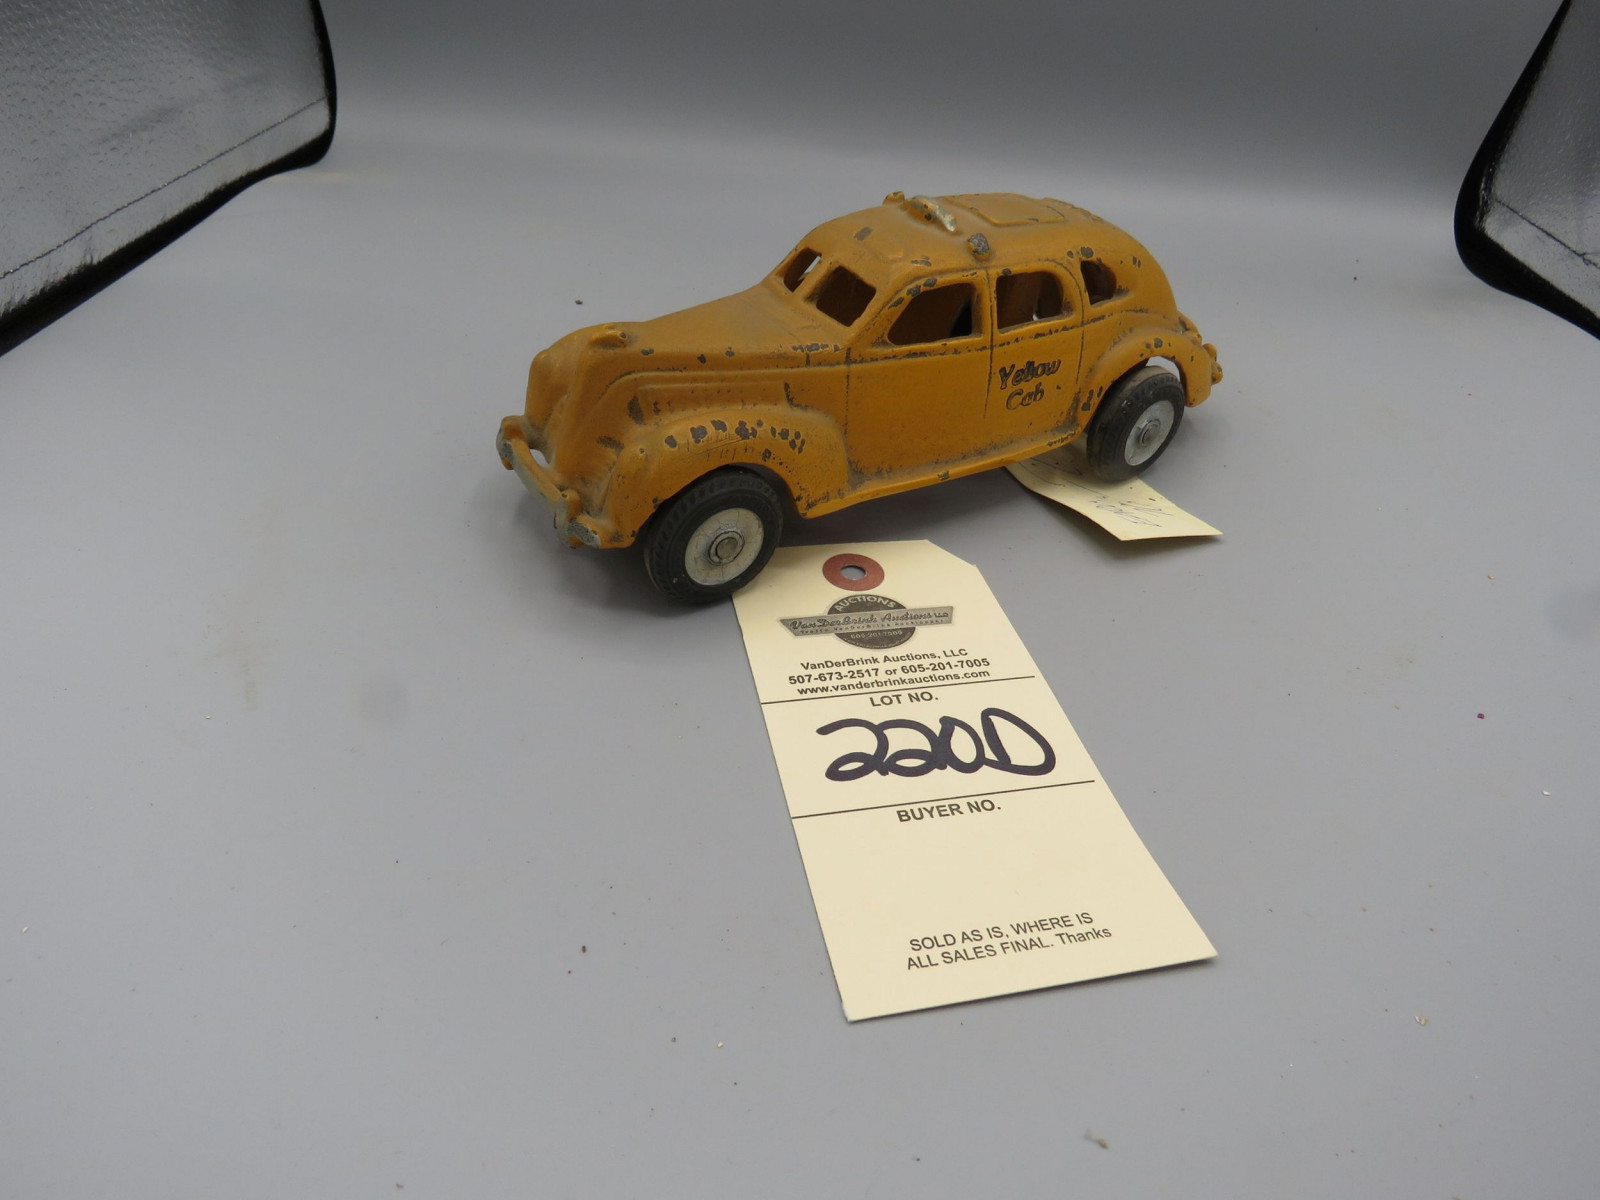 Vintage Cast Iron Early Taxi Cab - Image 2